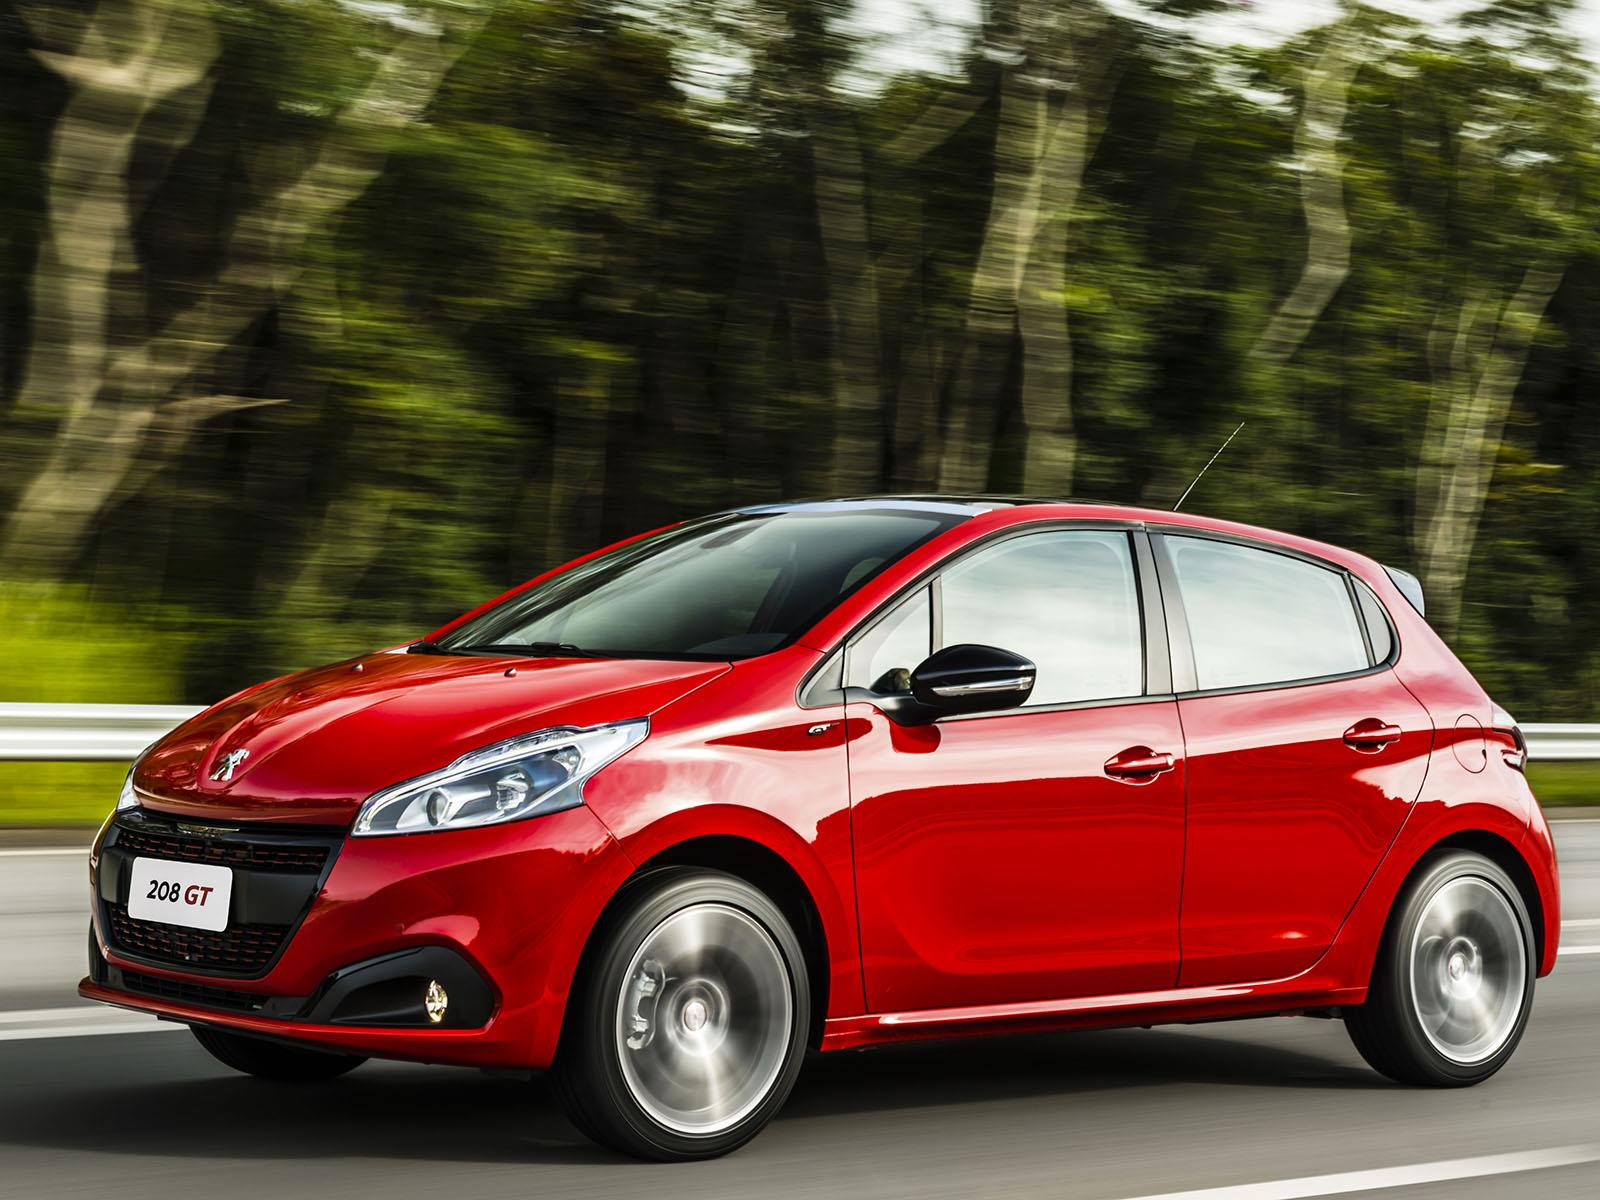 lanzamiento nuevos peugeot 208 y 208 gt en argentina. Black Bedroom Furniture Sets. Home Design Ideas